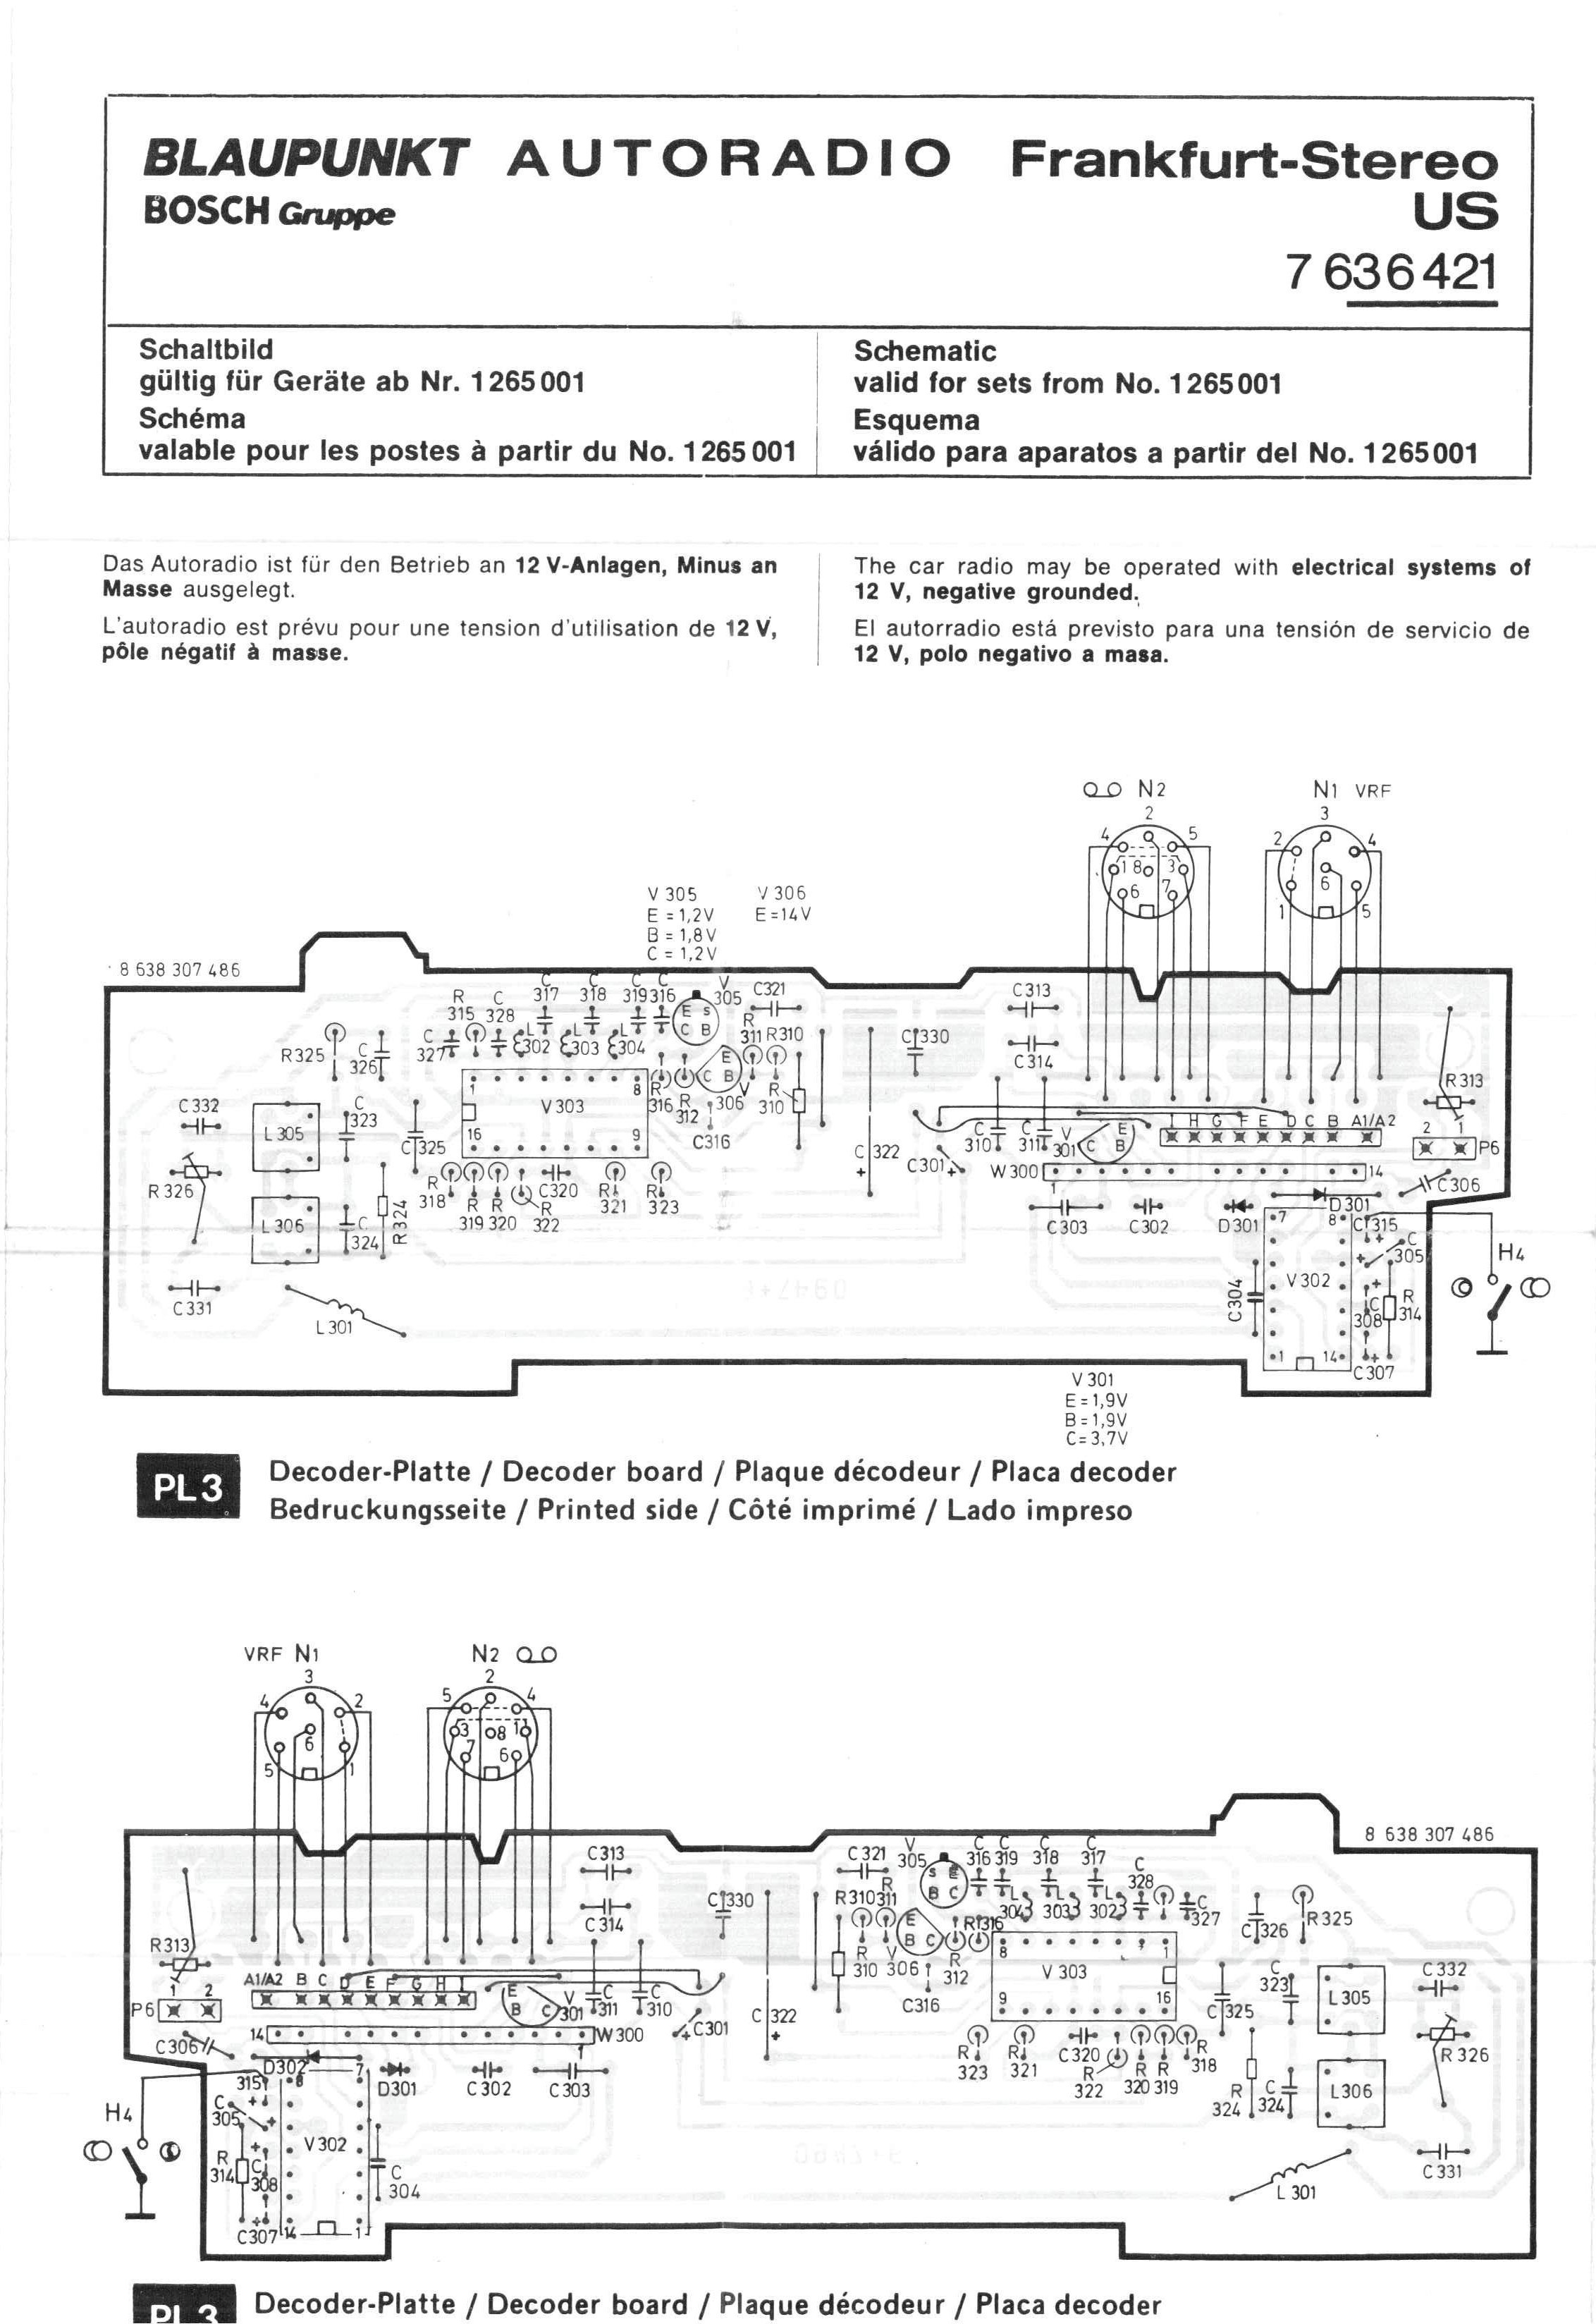 Wiring Diagram Blaupunkt Car Stereo Diagrams Thesamba Com 1977 Frankfurt Us Schematic Bose